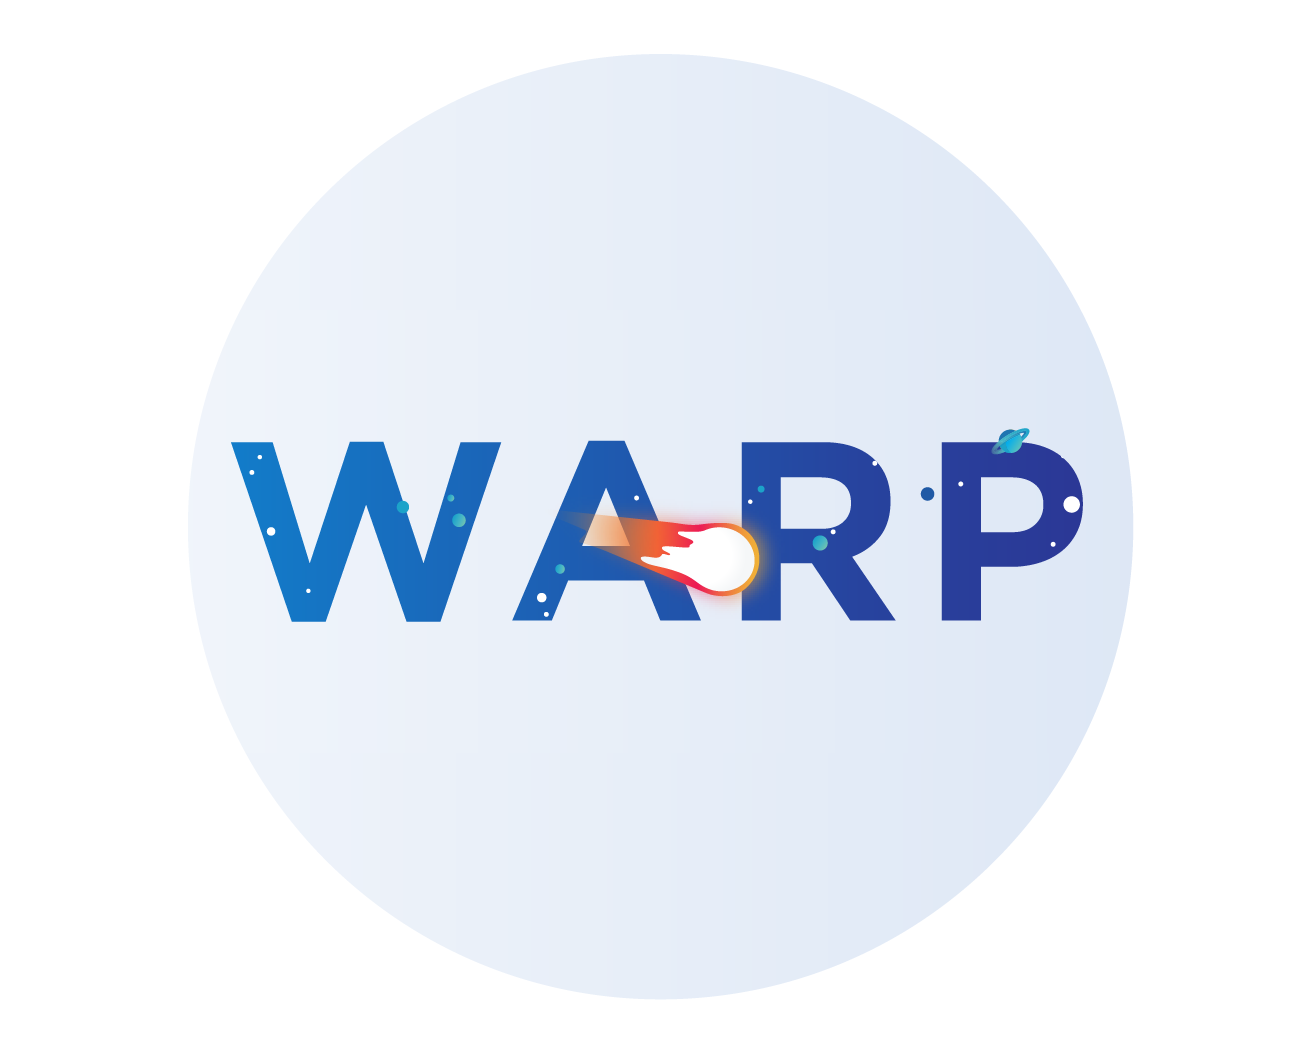 WARP is here (sorry it took so long)